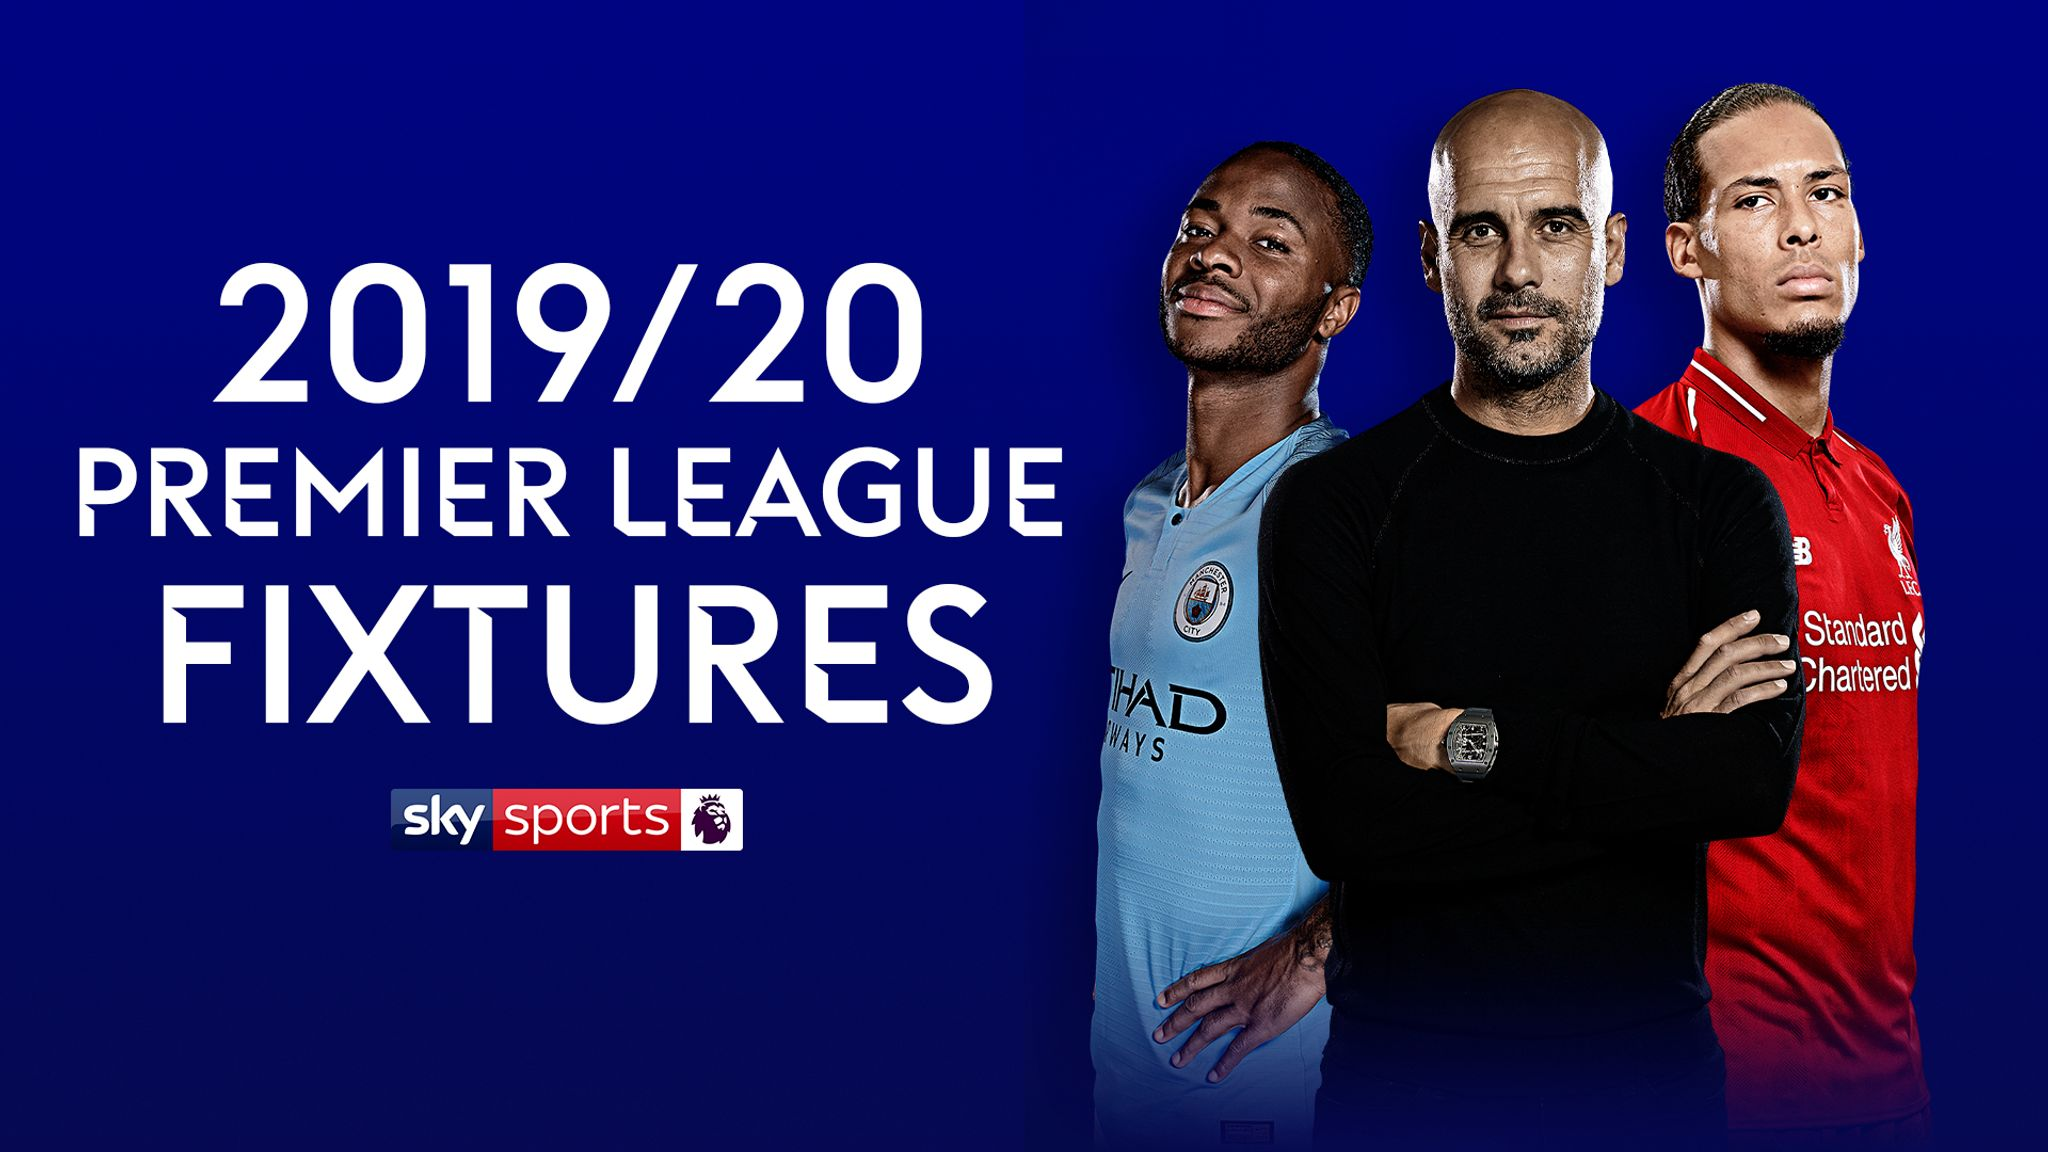 Premier League fixtures 2019/20: Liverpool face Norwich, Man